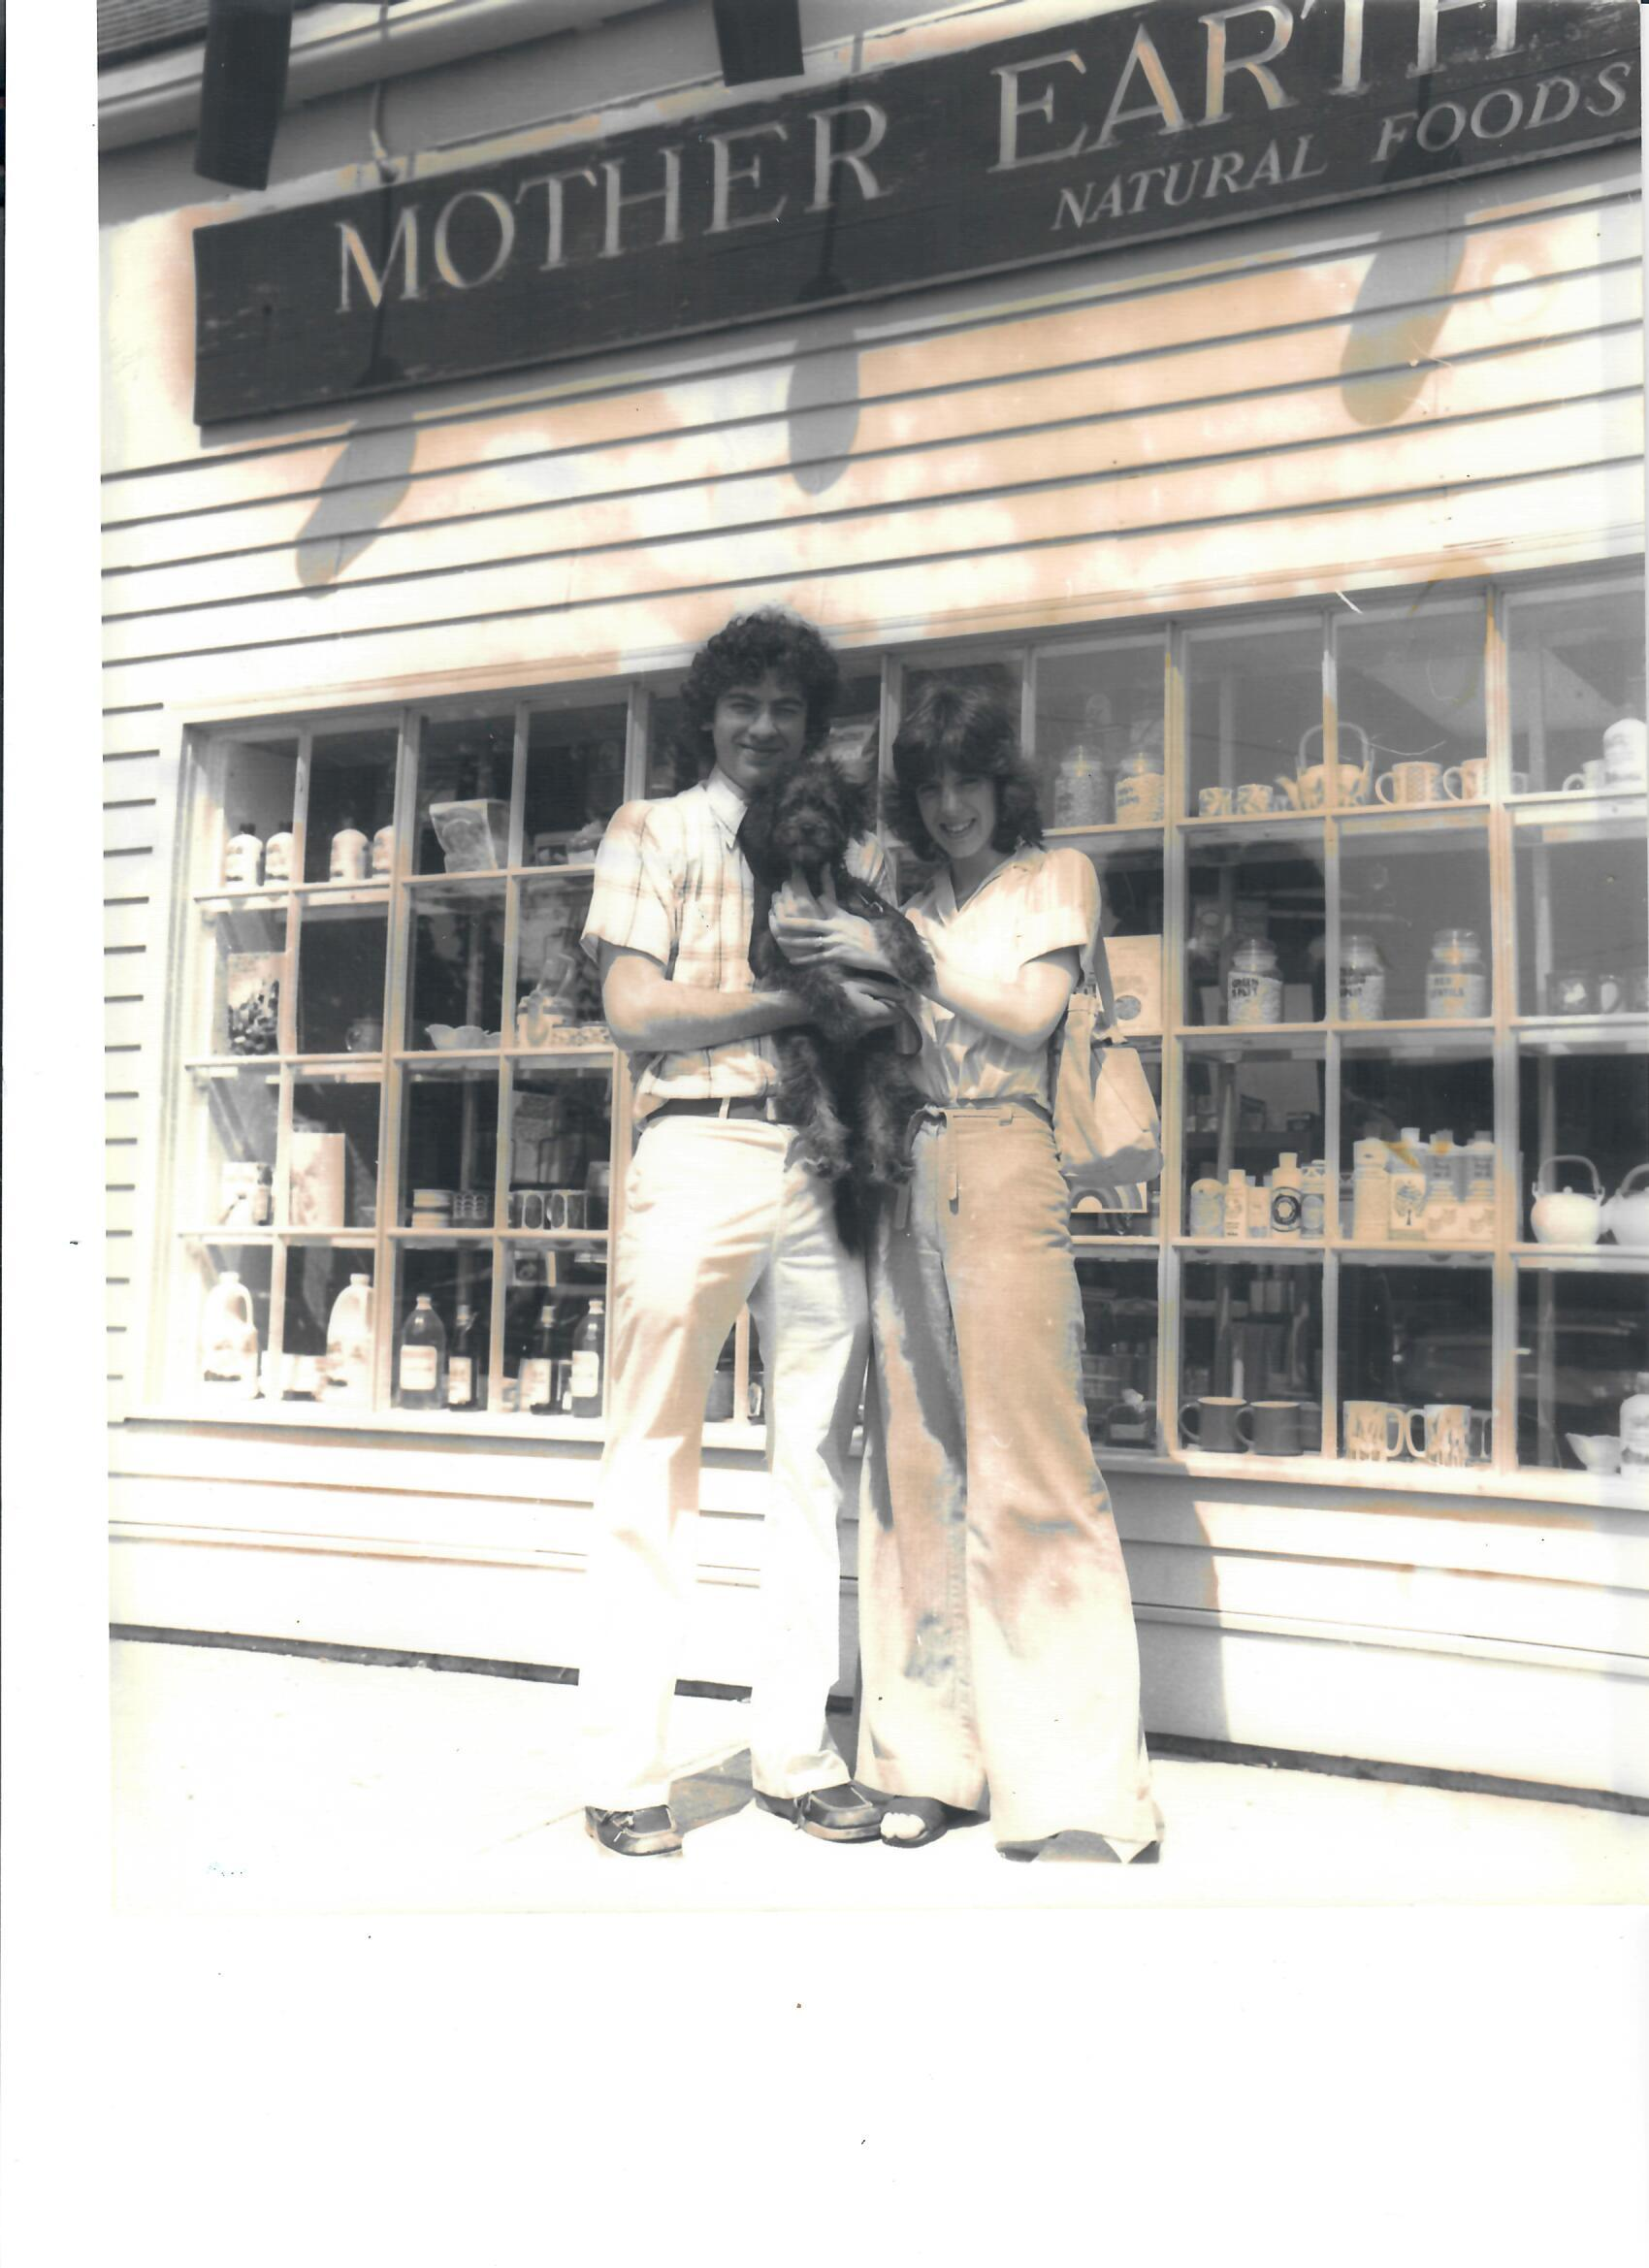 Paul and Barbi Schulick's Health Food Store